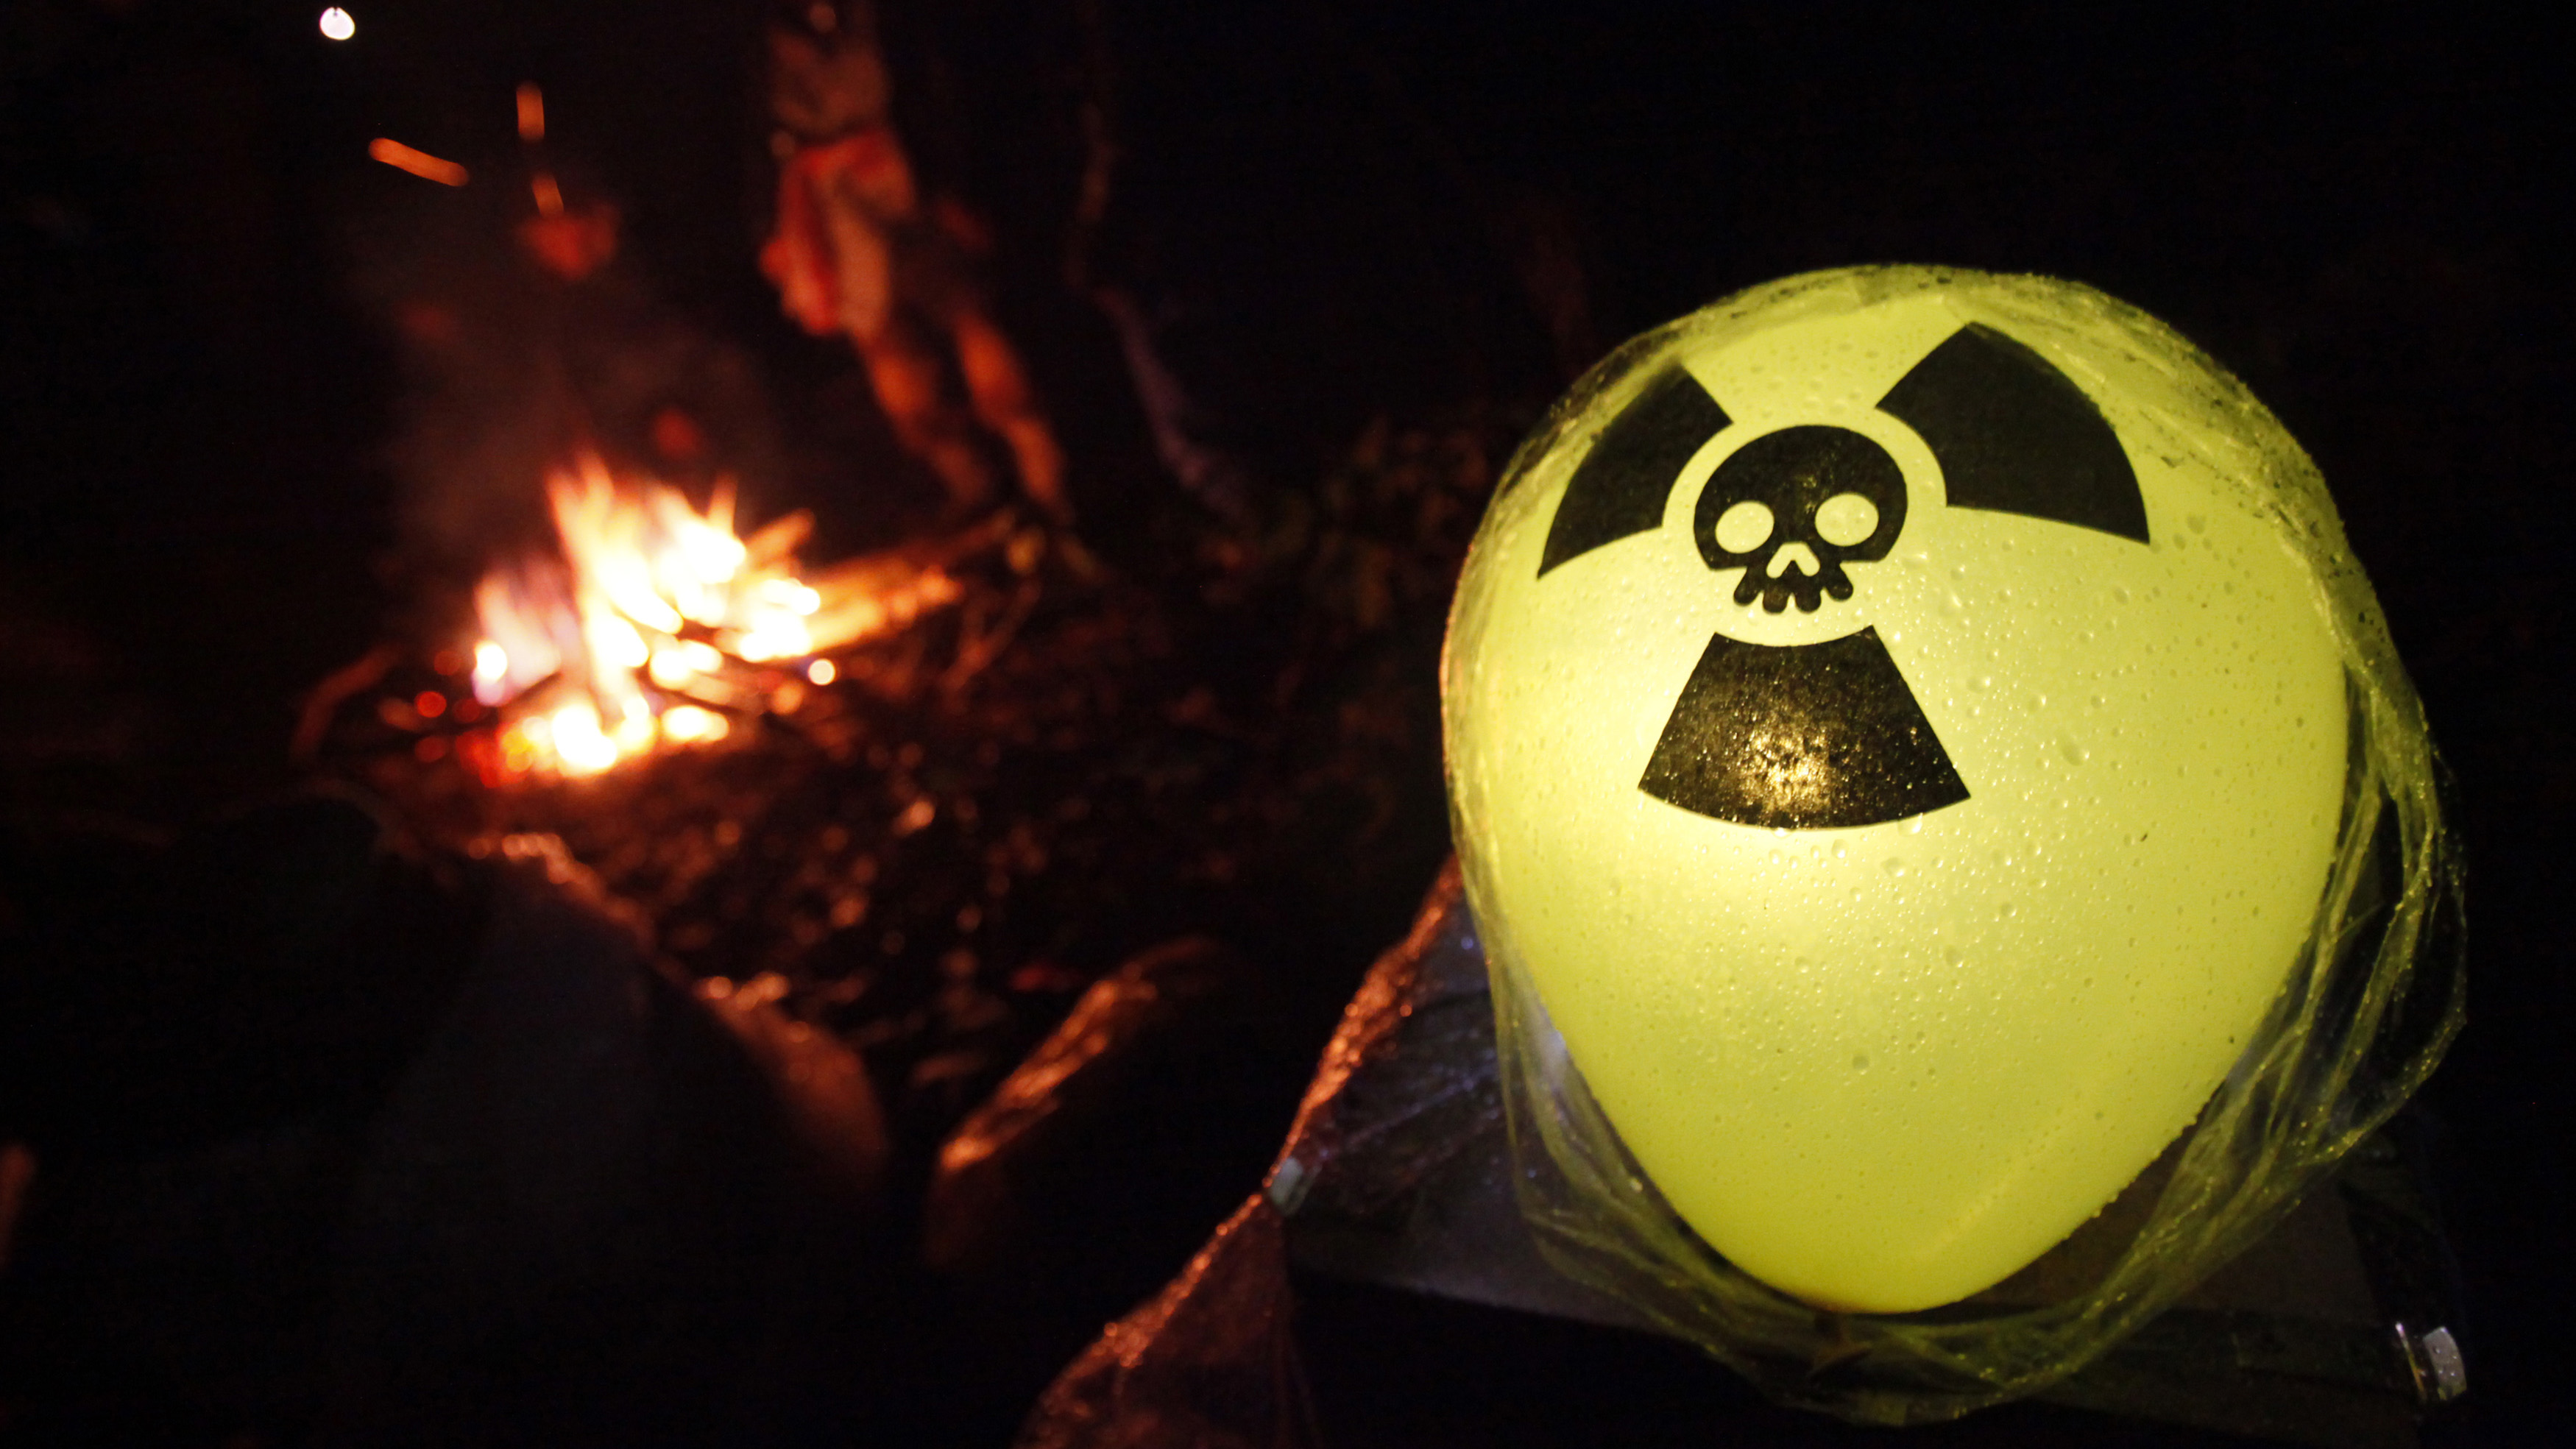 An illuminated balloon with the nuclear symbol is seen as anti-nuclear protesters warm themselves around a camp fire during a sit-in of hundreds of demonstrators on the rails near Harlingen November 26, 2011, to block a train carrying nuclear waste. The Castor (Cask for Storage and Transport Of Radioactive material) train is carrying 11 containers of spent German nuclear fuel on route from France after being reprocessed, to the nuclear waste storage facility of Gorleben in north eastern Germany this weekend. REUTERS/Wolfgang Rattay   GERMANY (ENVIRONMENT POLITICS CIVIL UNREST) - RTR2UI6O